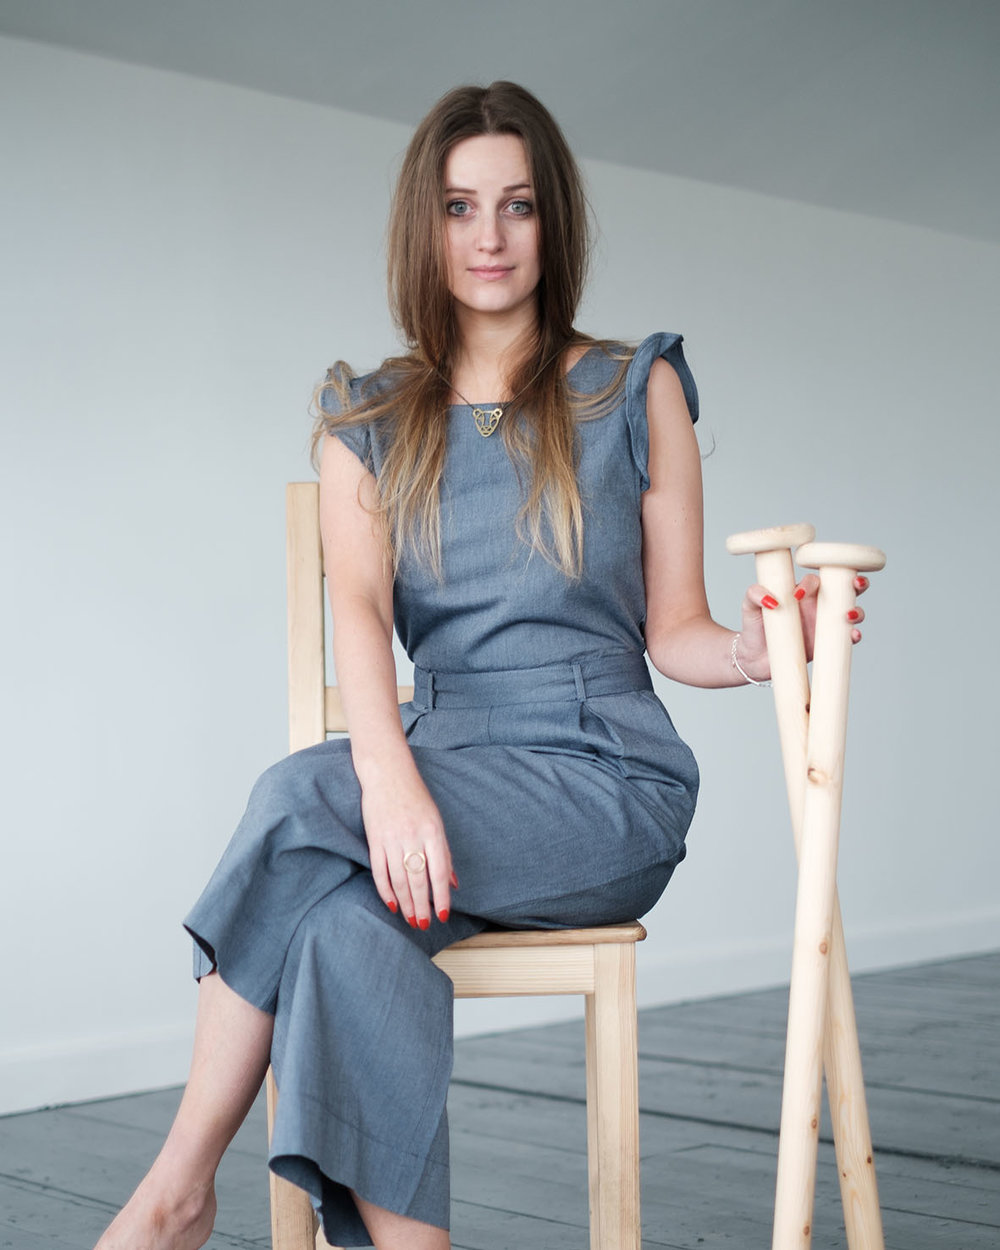 One of the shots of me from the IWD shoot photo by Harry Cooke, Jumpsuit borrowed from Sanchos and needles LAD's own :p